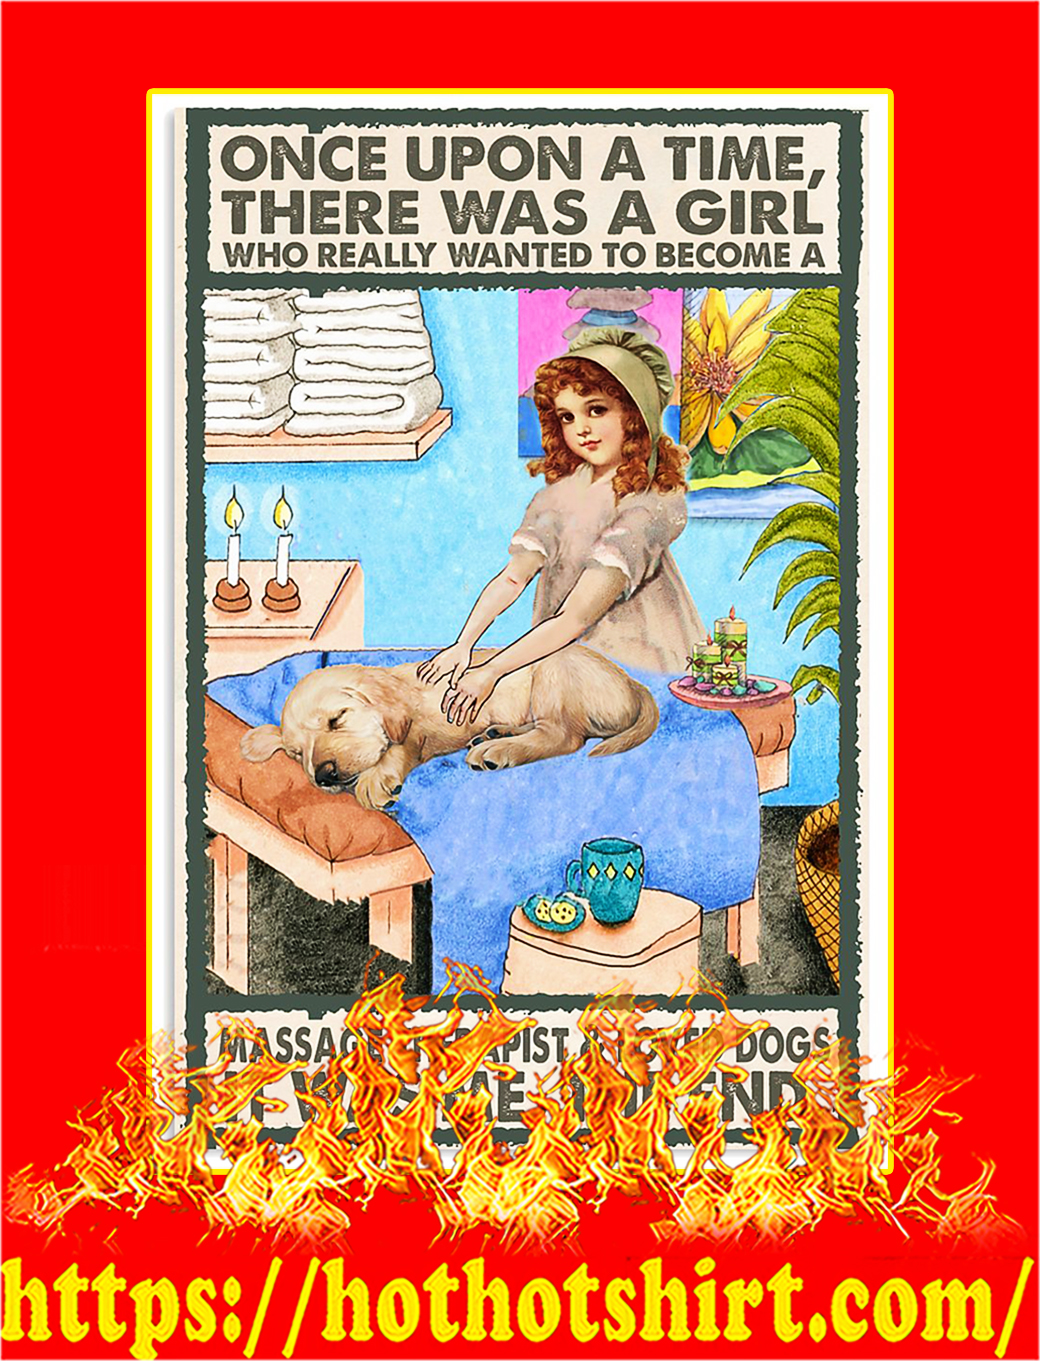 Once upon a time there was a girl who really wanted to become a massage therapist and loved dogs poster - A1